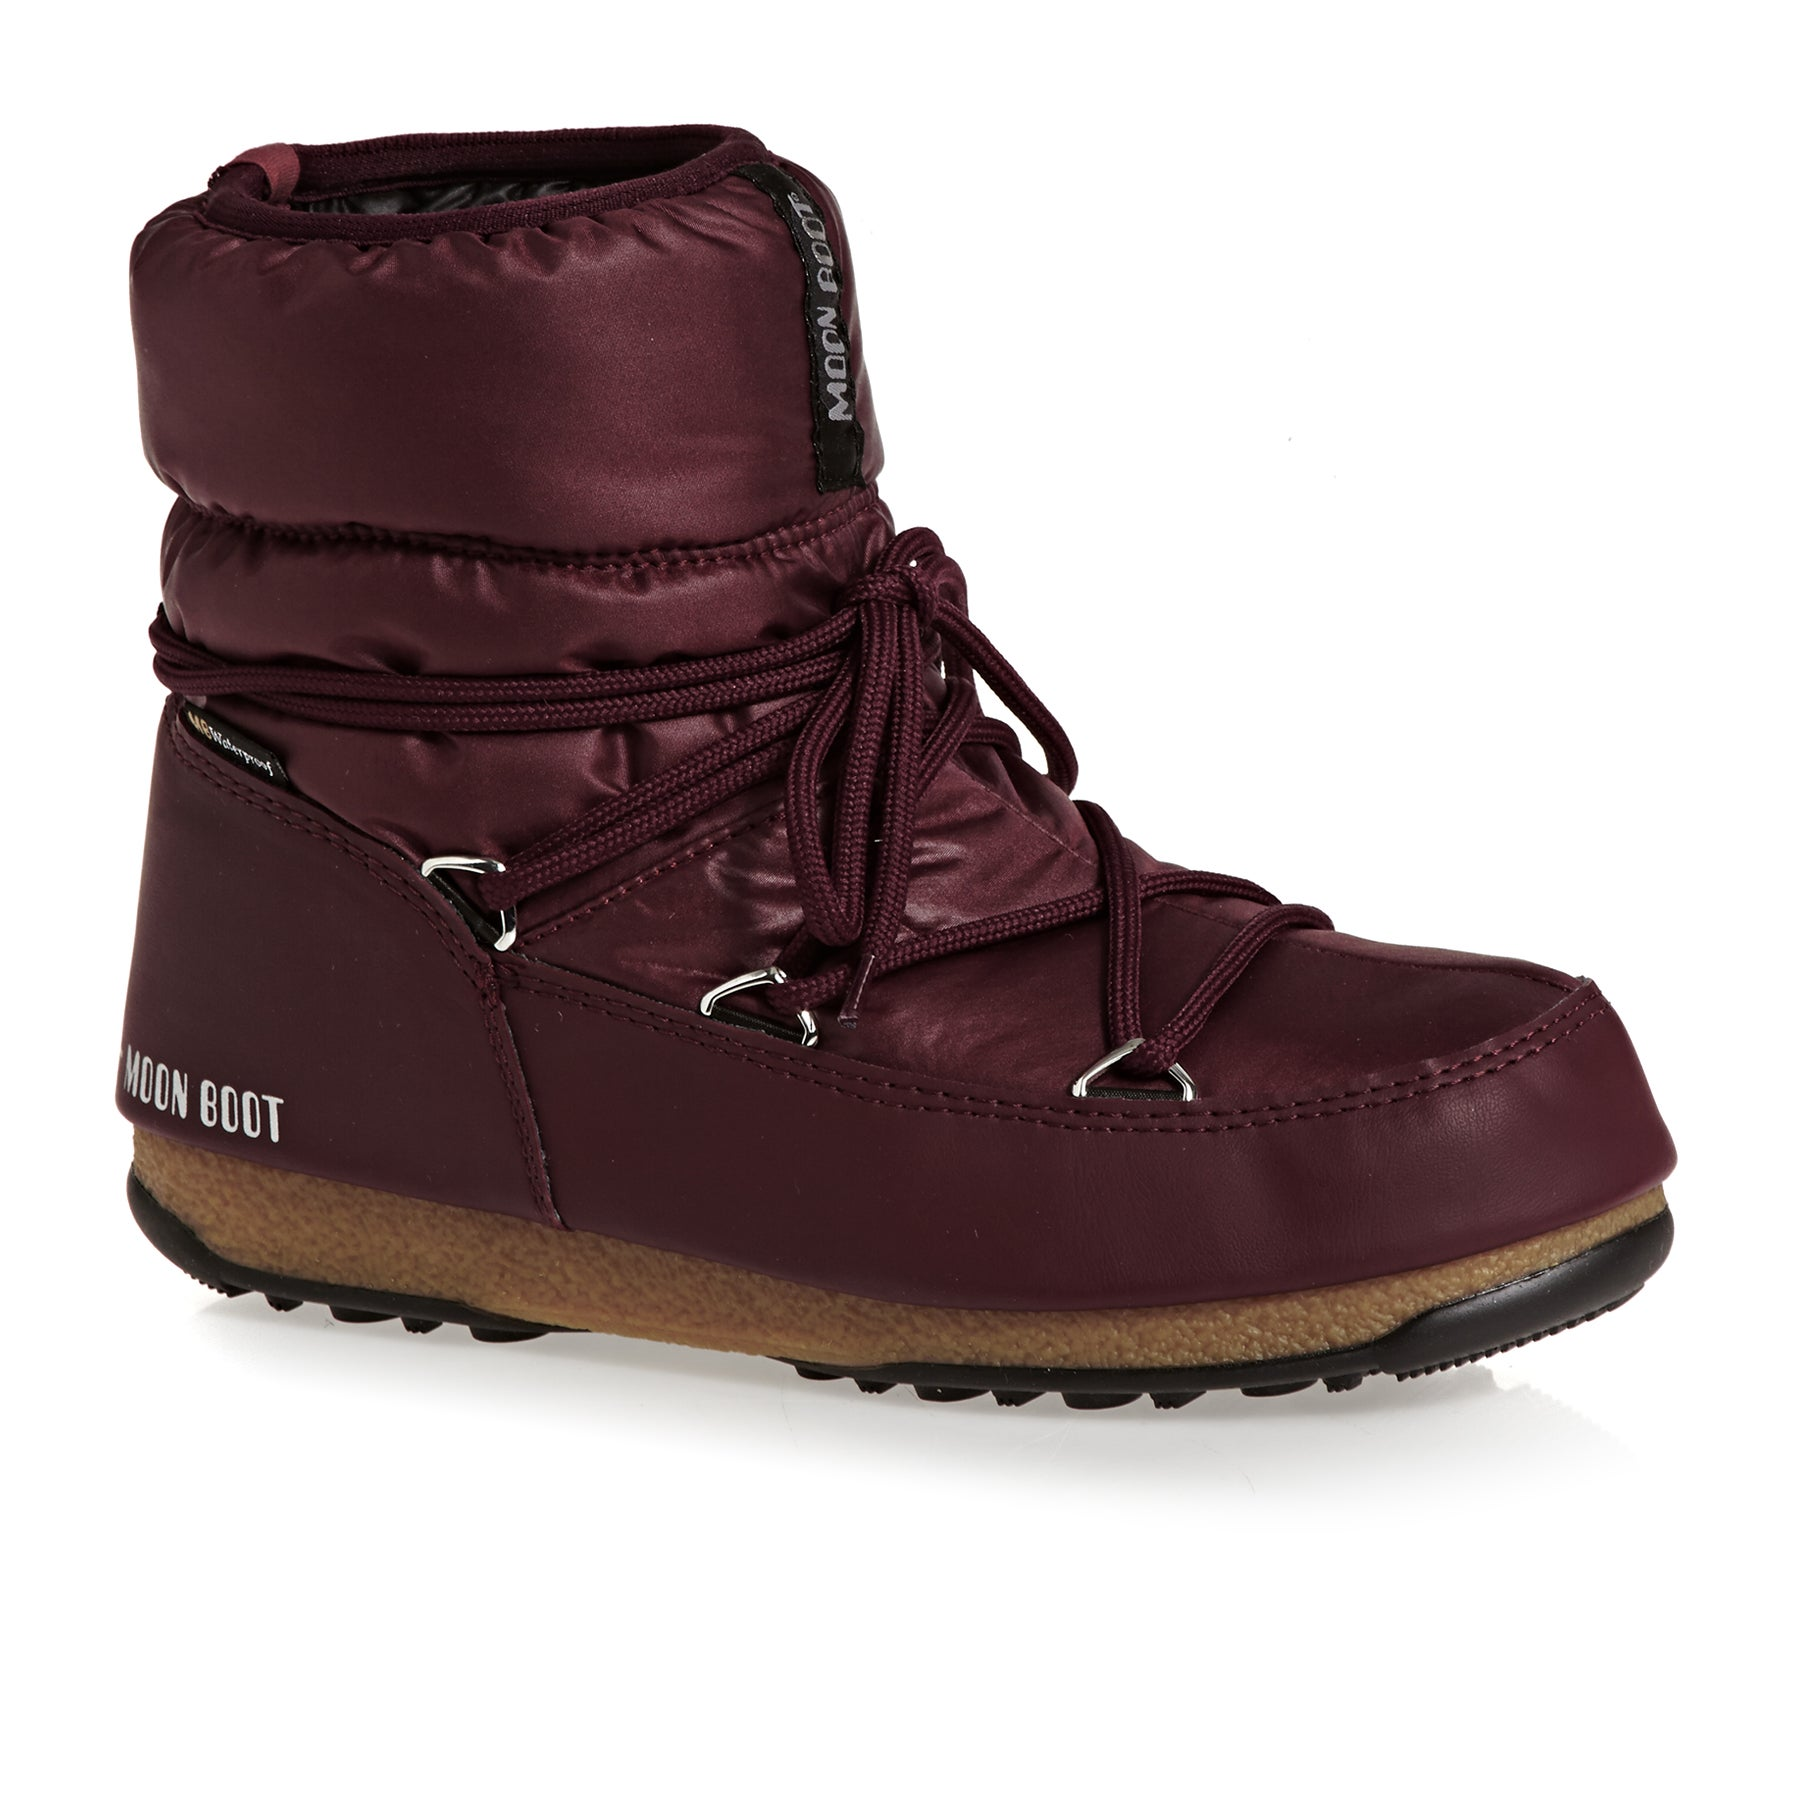 Moon Boot Low Nylon WP Womens Boots - Port Royale